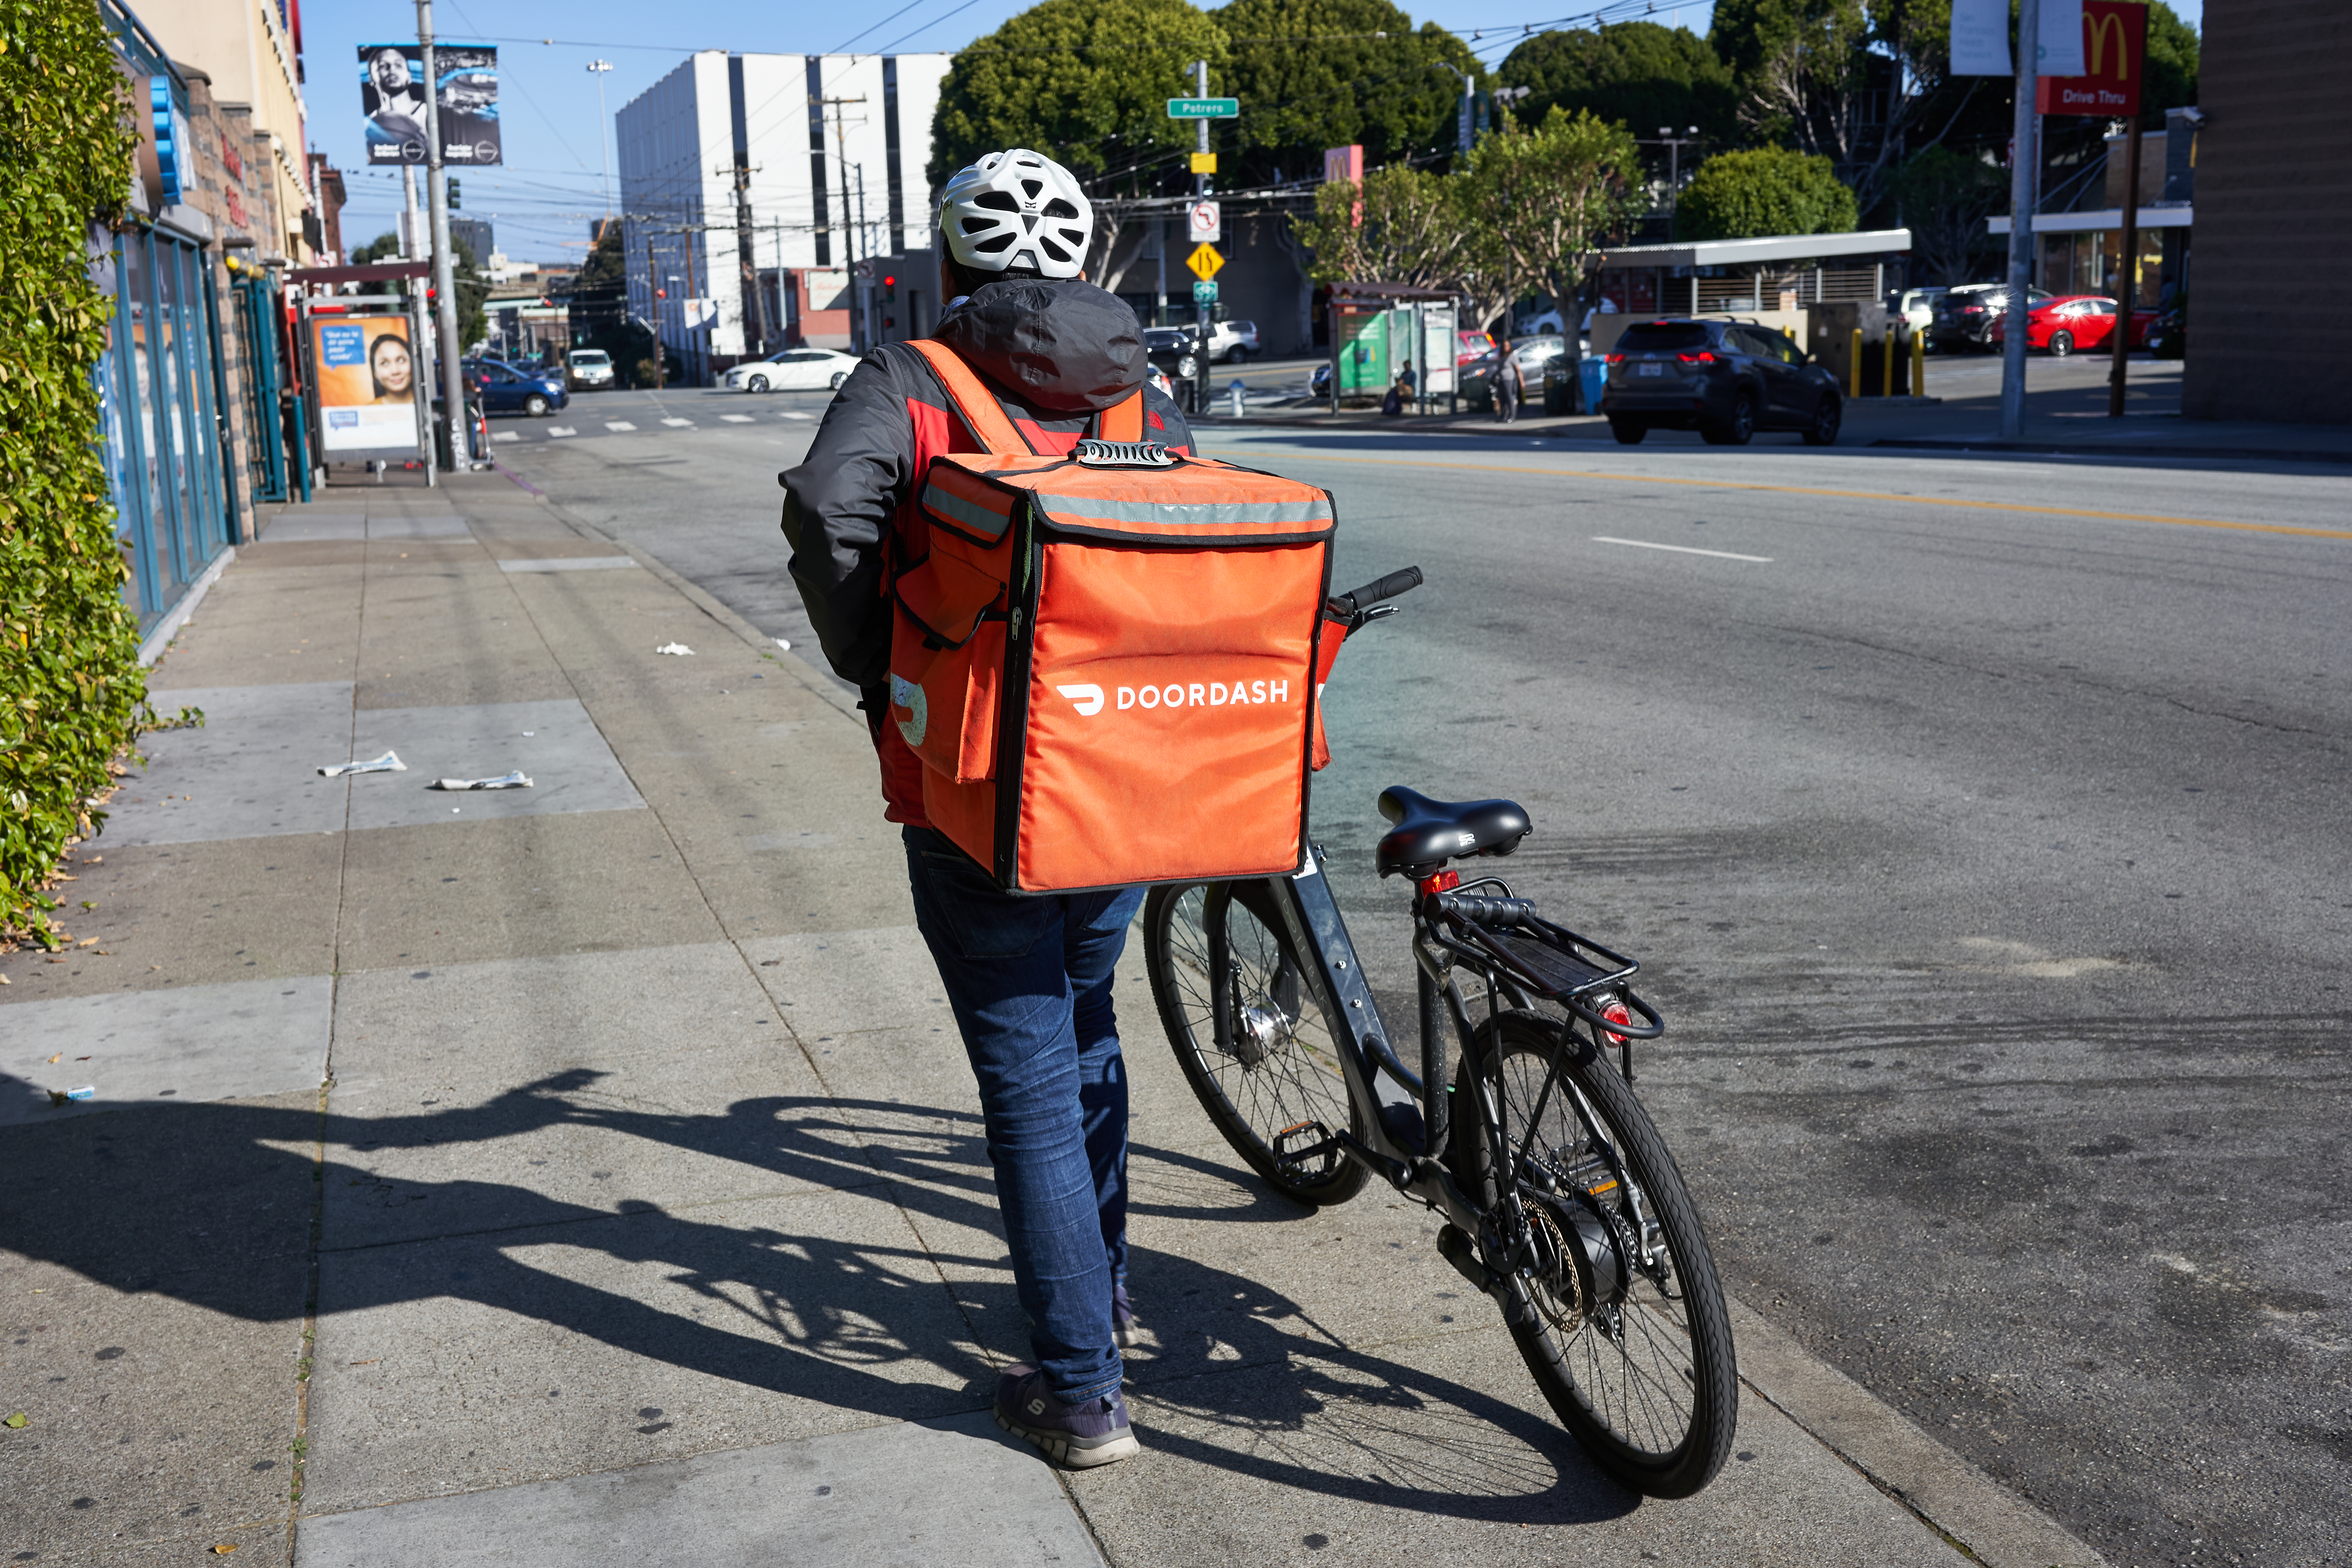 A DoorDash delivery worker walks his bike along the road in the Mission neighborhood of San Francisco, California.